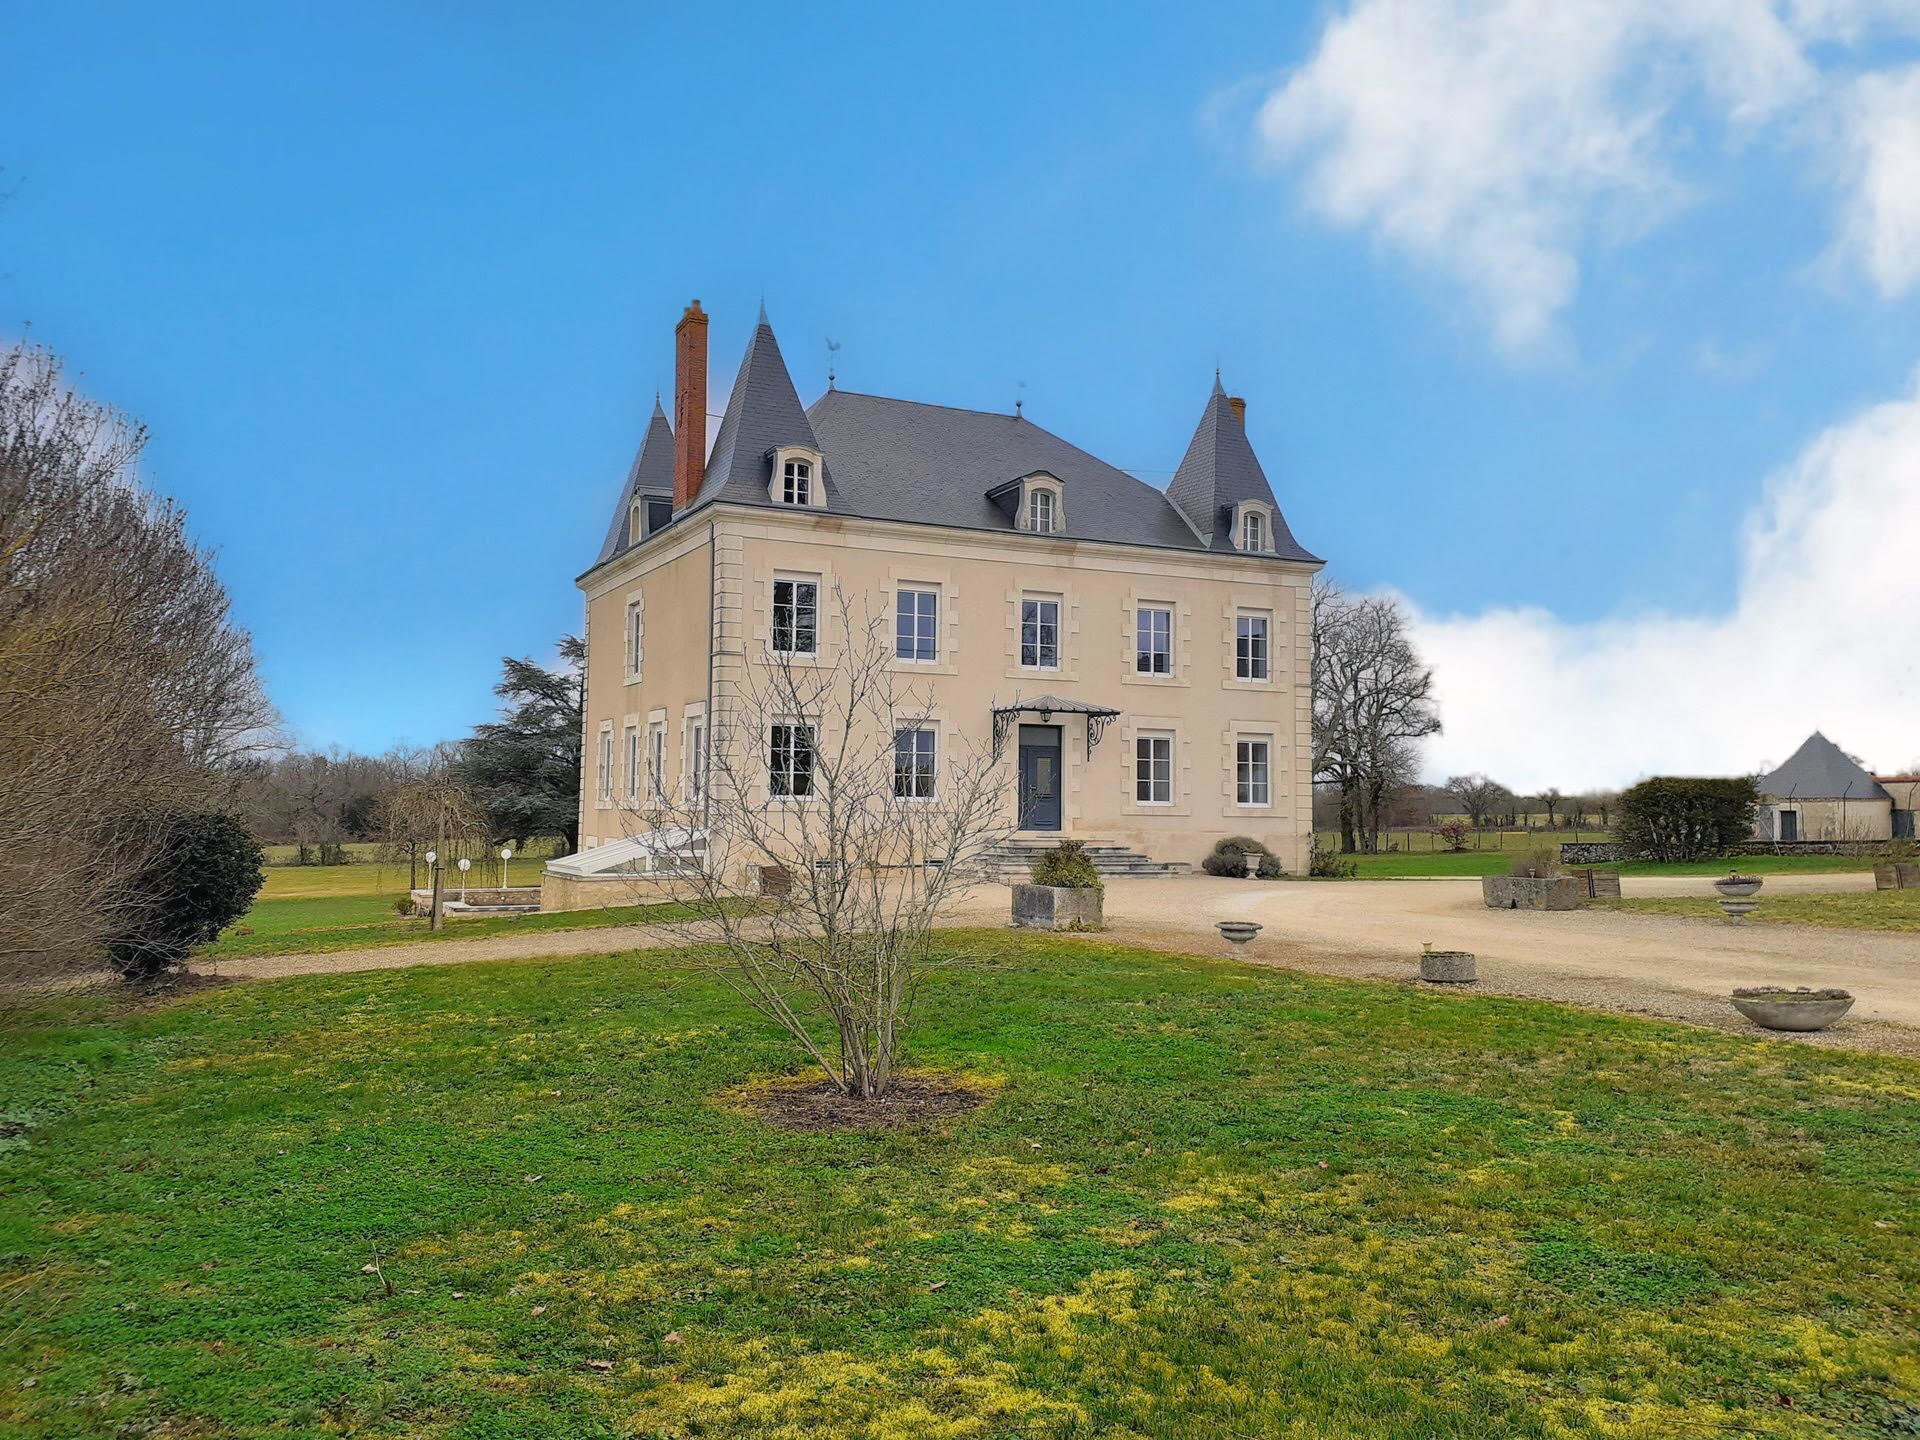 Perfectly renovated Chateau with guardian house in 2.78 hectares of park